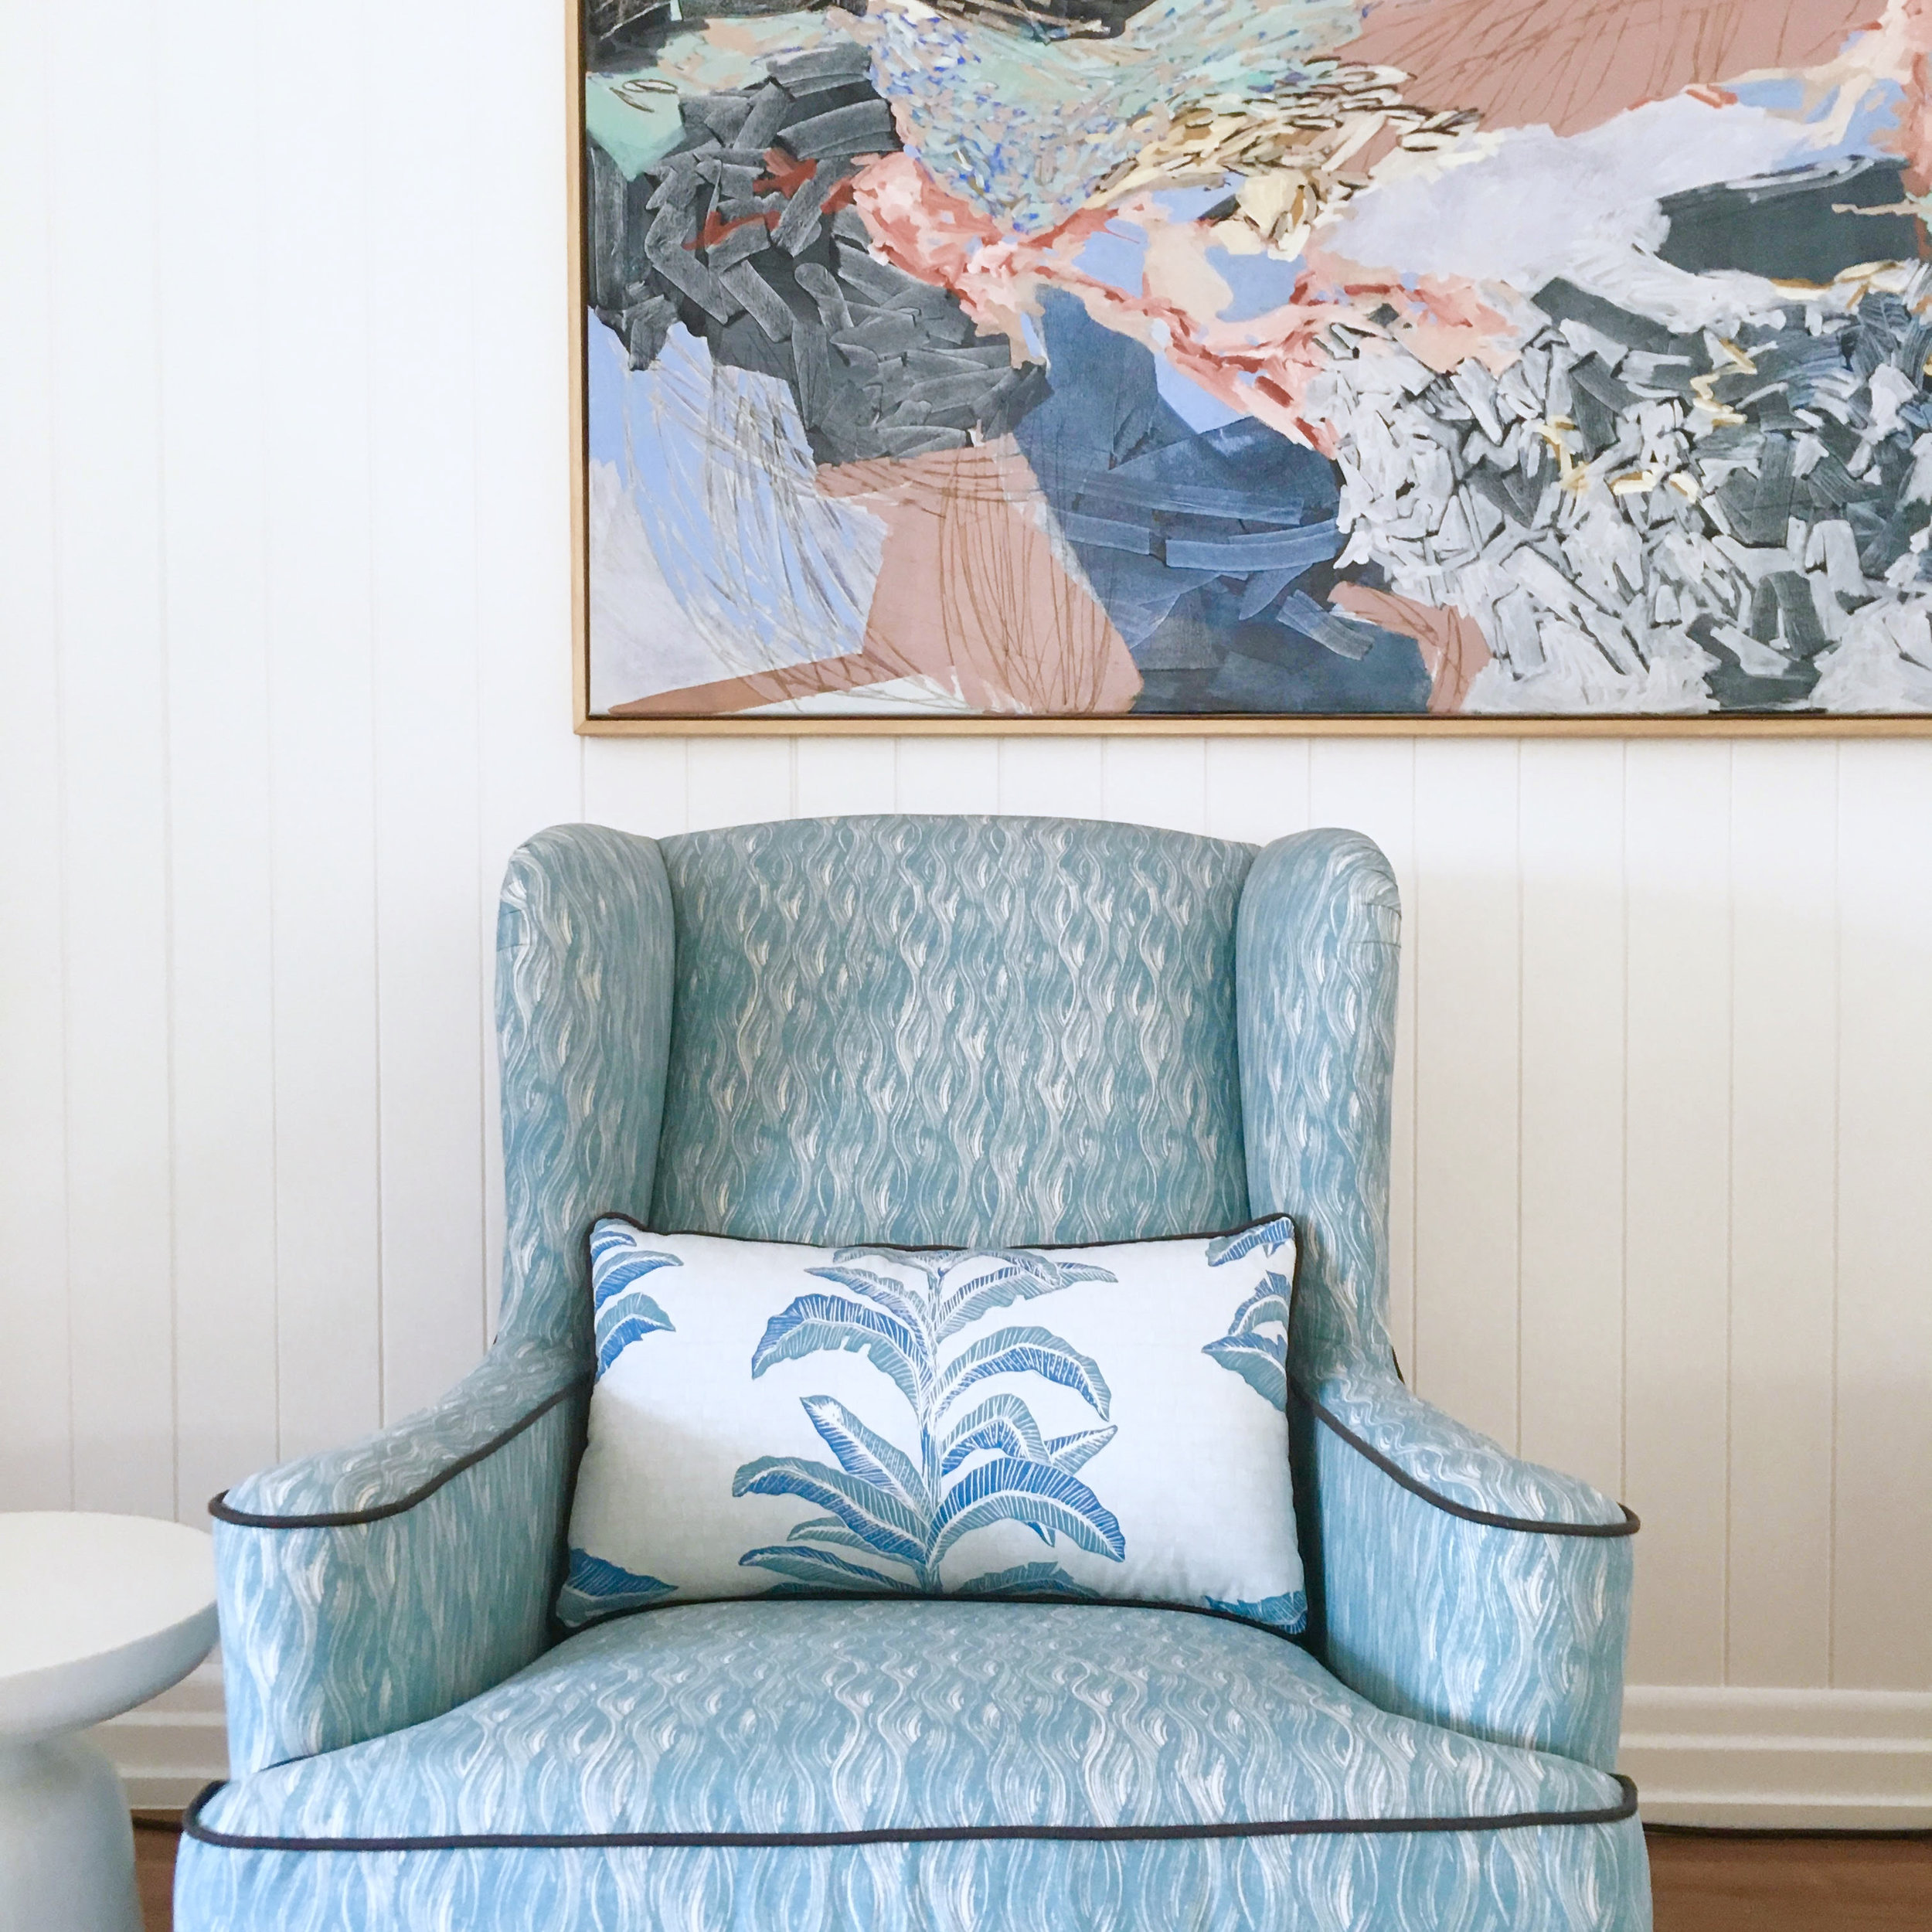 Painted Wave Fabric in Lake, Interiors by Claire Stevens Interior Design, Featured in House & Garden UK